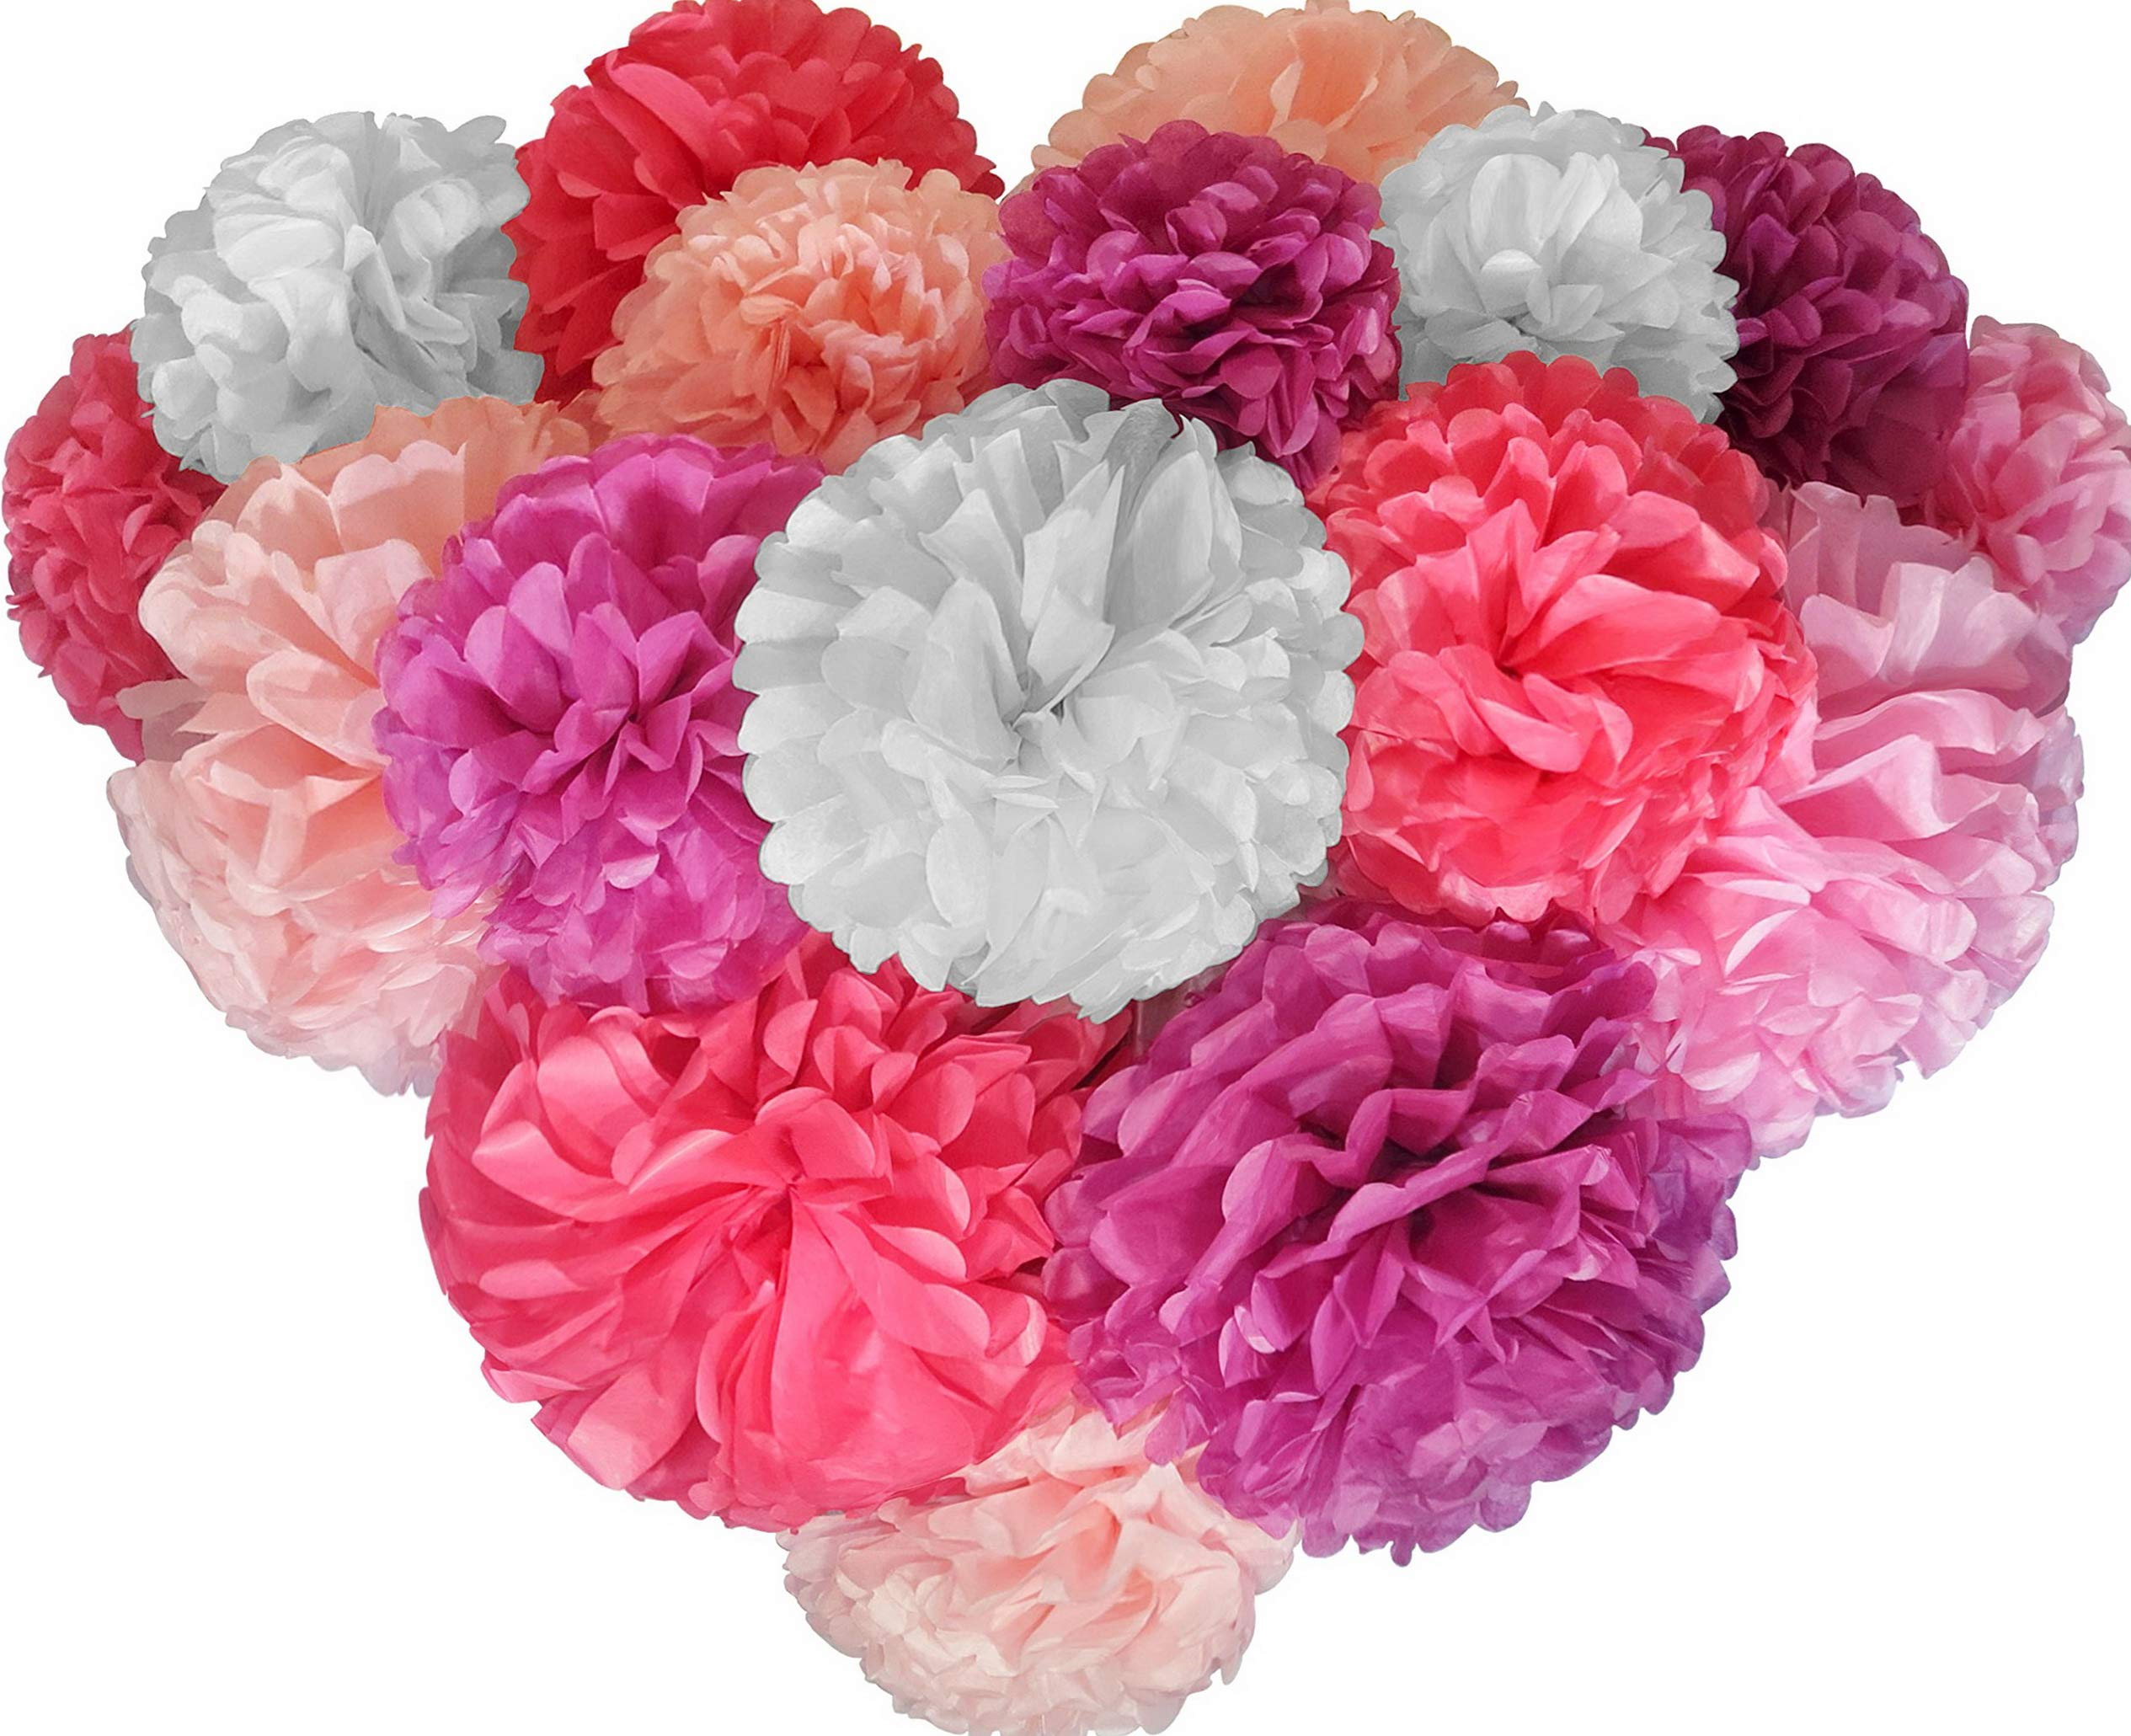 Mikash Paper Pom Poms - 20 pcs of 8, 10, 14 Inch - Paper Flowers - Perfect for Wedding Decor - Birthday Celebration - Table and Wall Tion (Pink Mix) | | Model WDDNG - 640